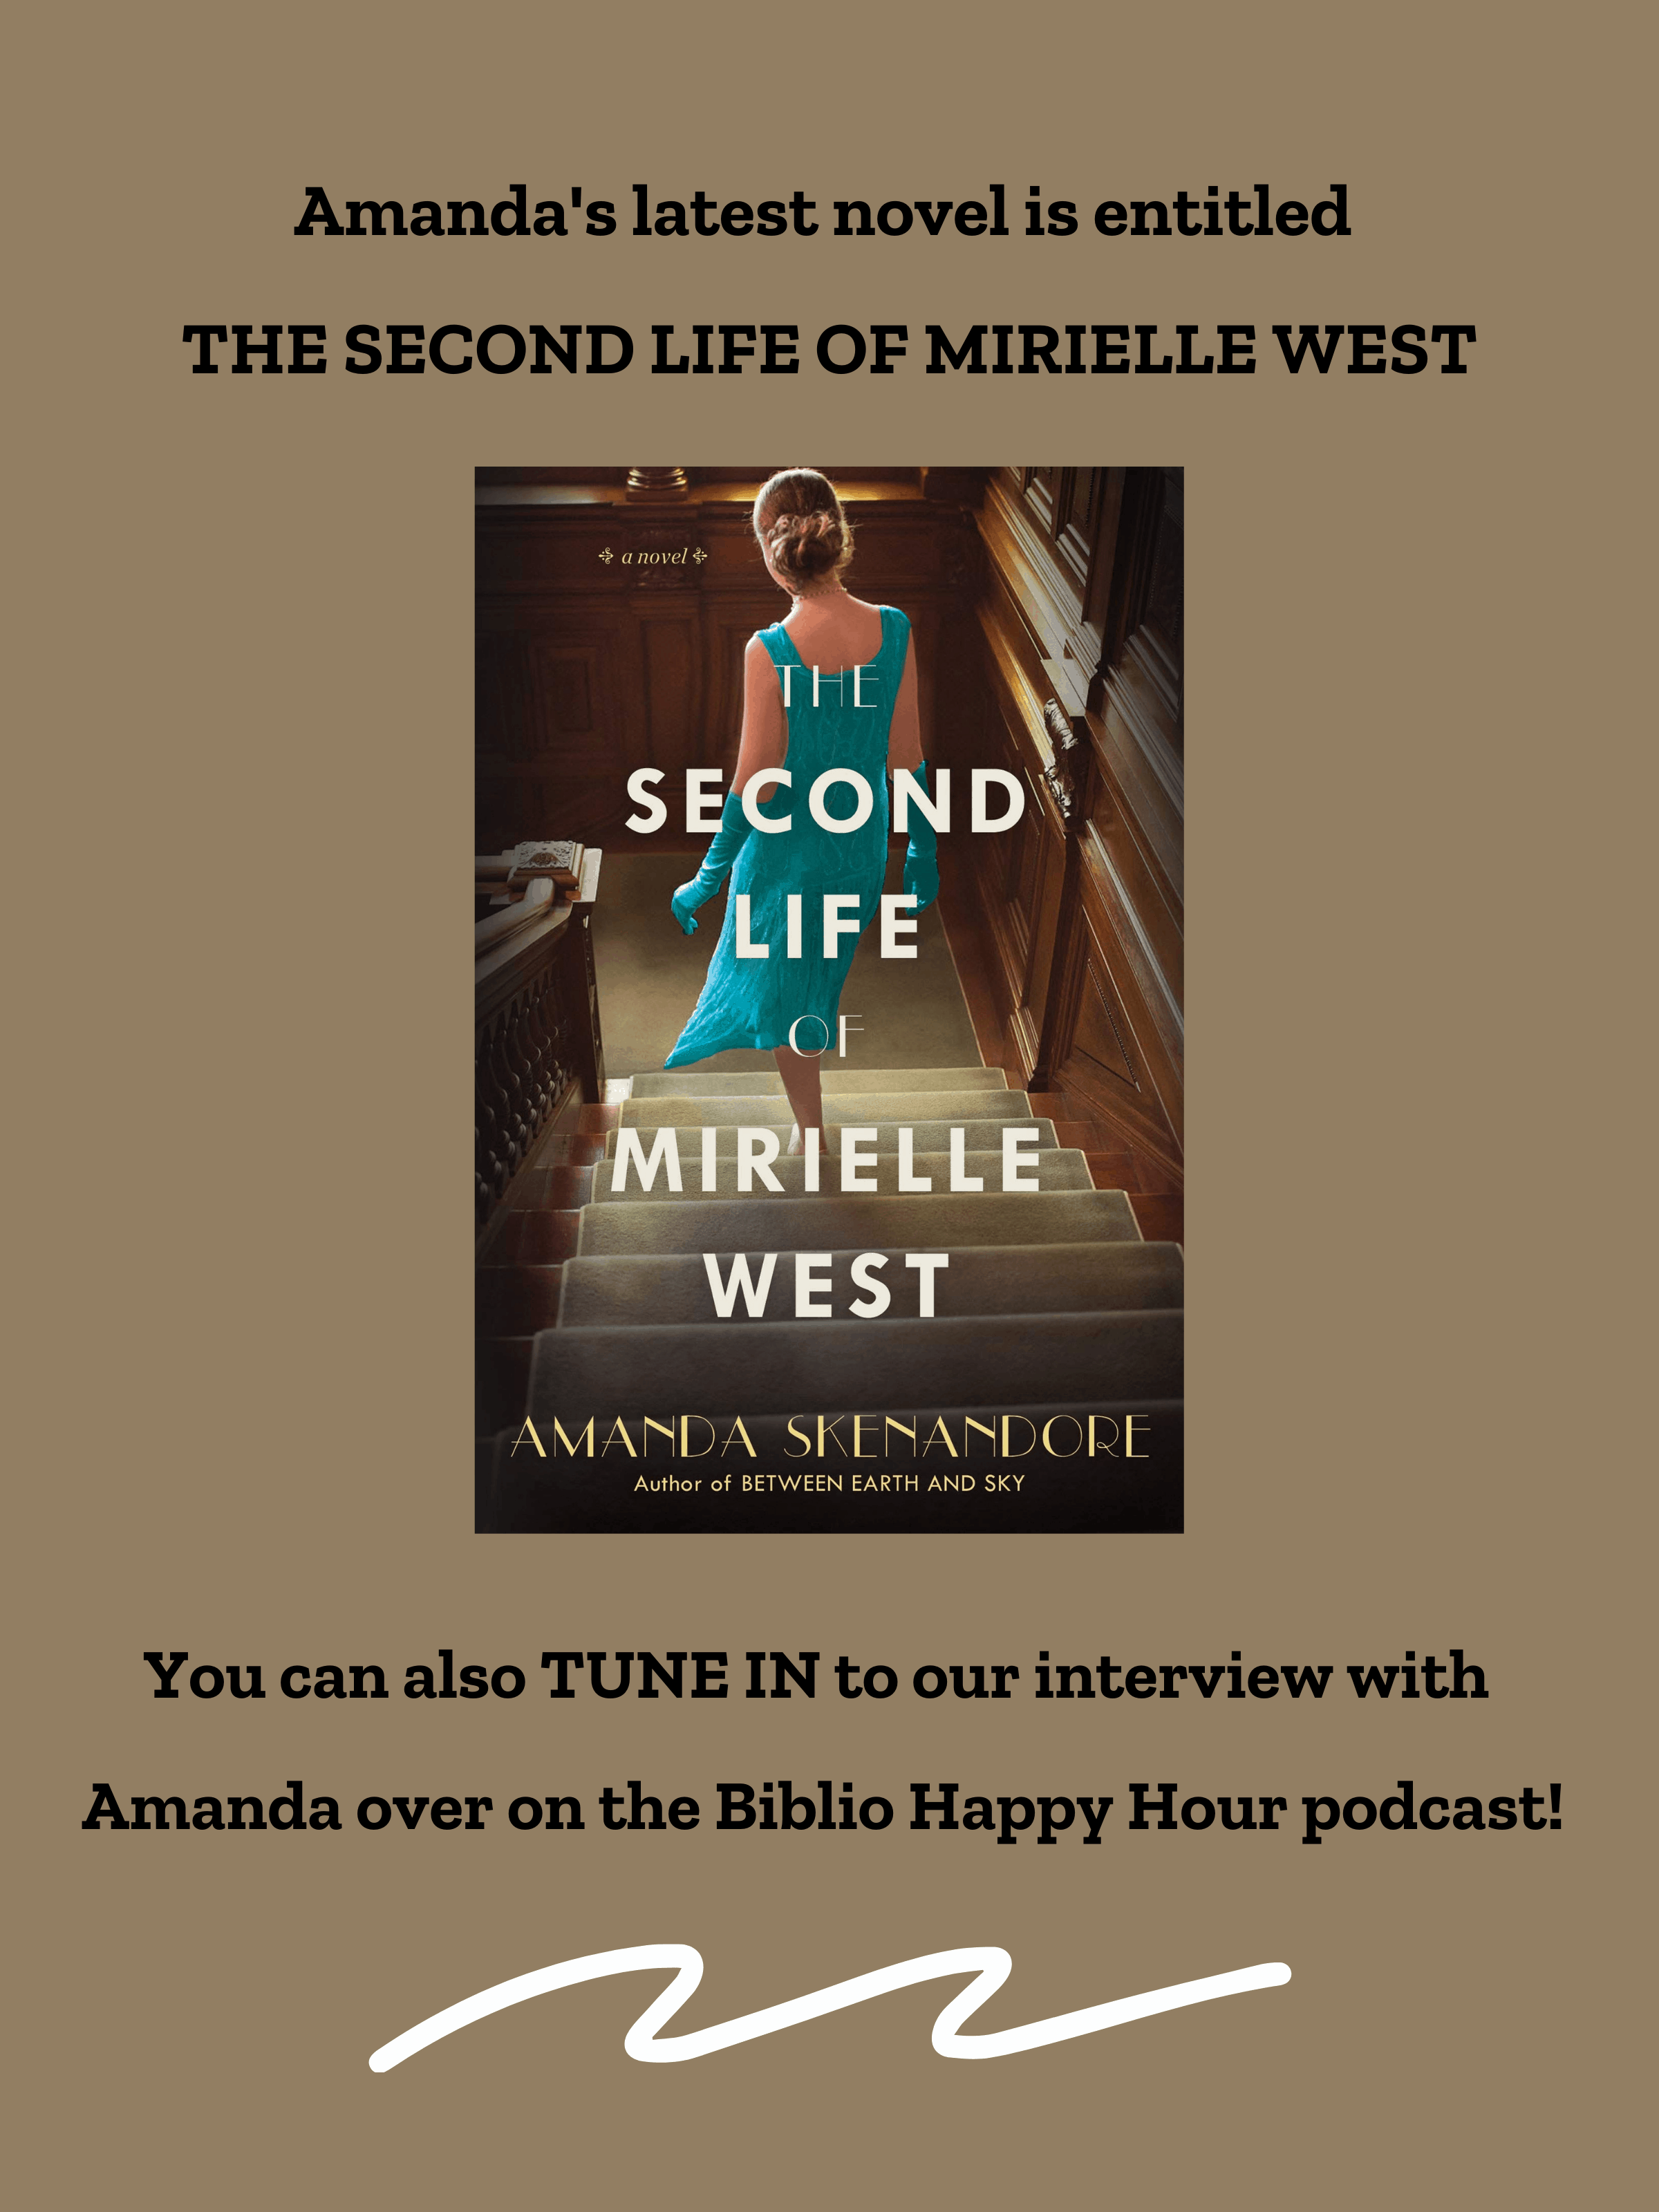 THE SECOND LIFE OF MIRIELLE WEST by Amanda Skenandore